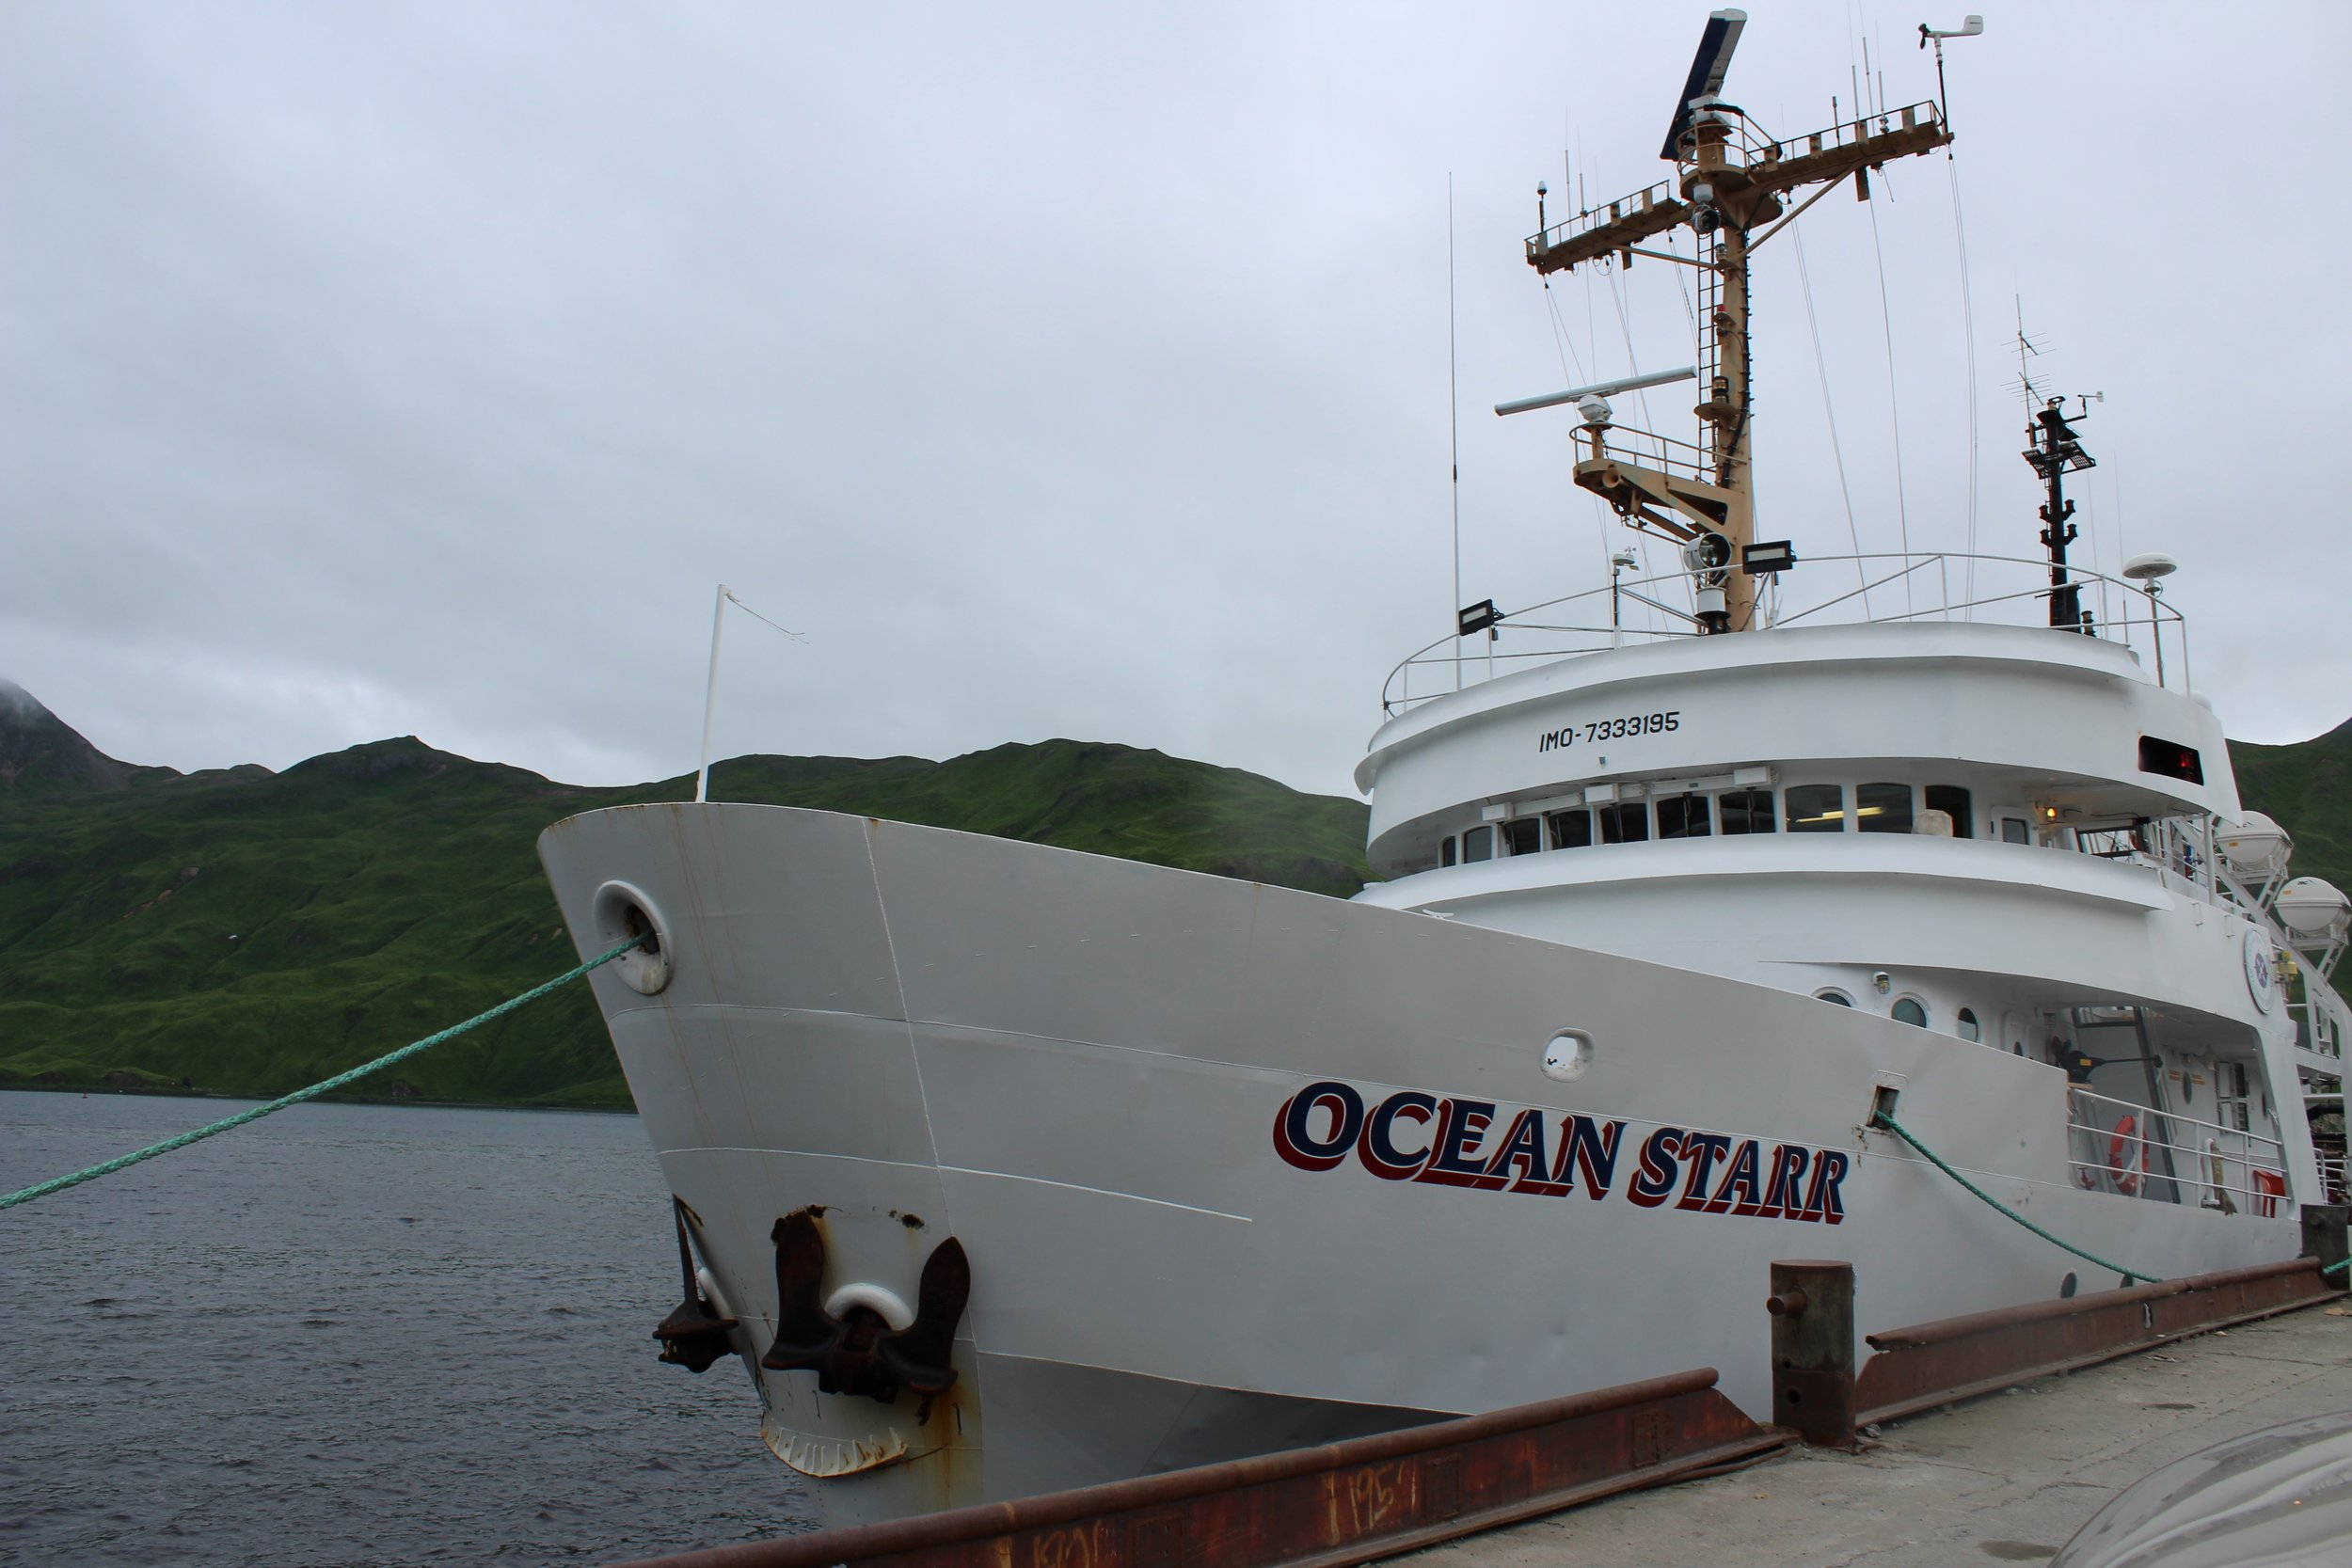 The R/V  Ocean Starr  prepares to depart for the summer survey of the Arctic Integrated Ecosystem Research Program. Photo credit: Harmony Wayner